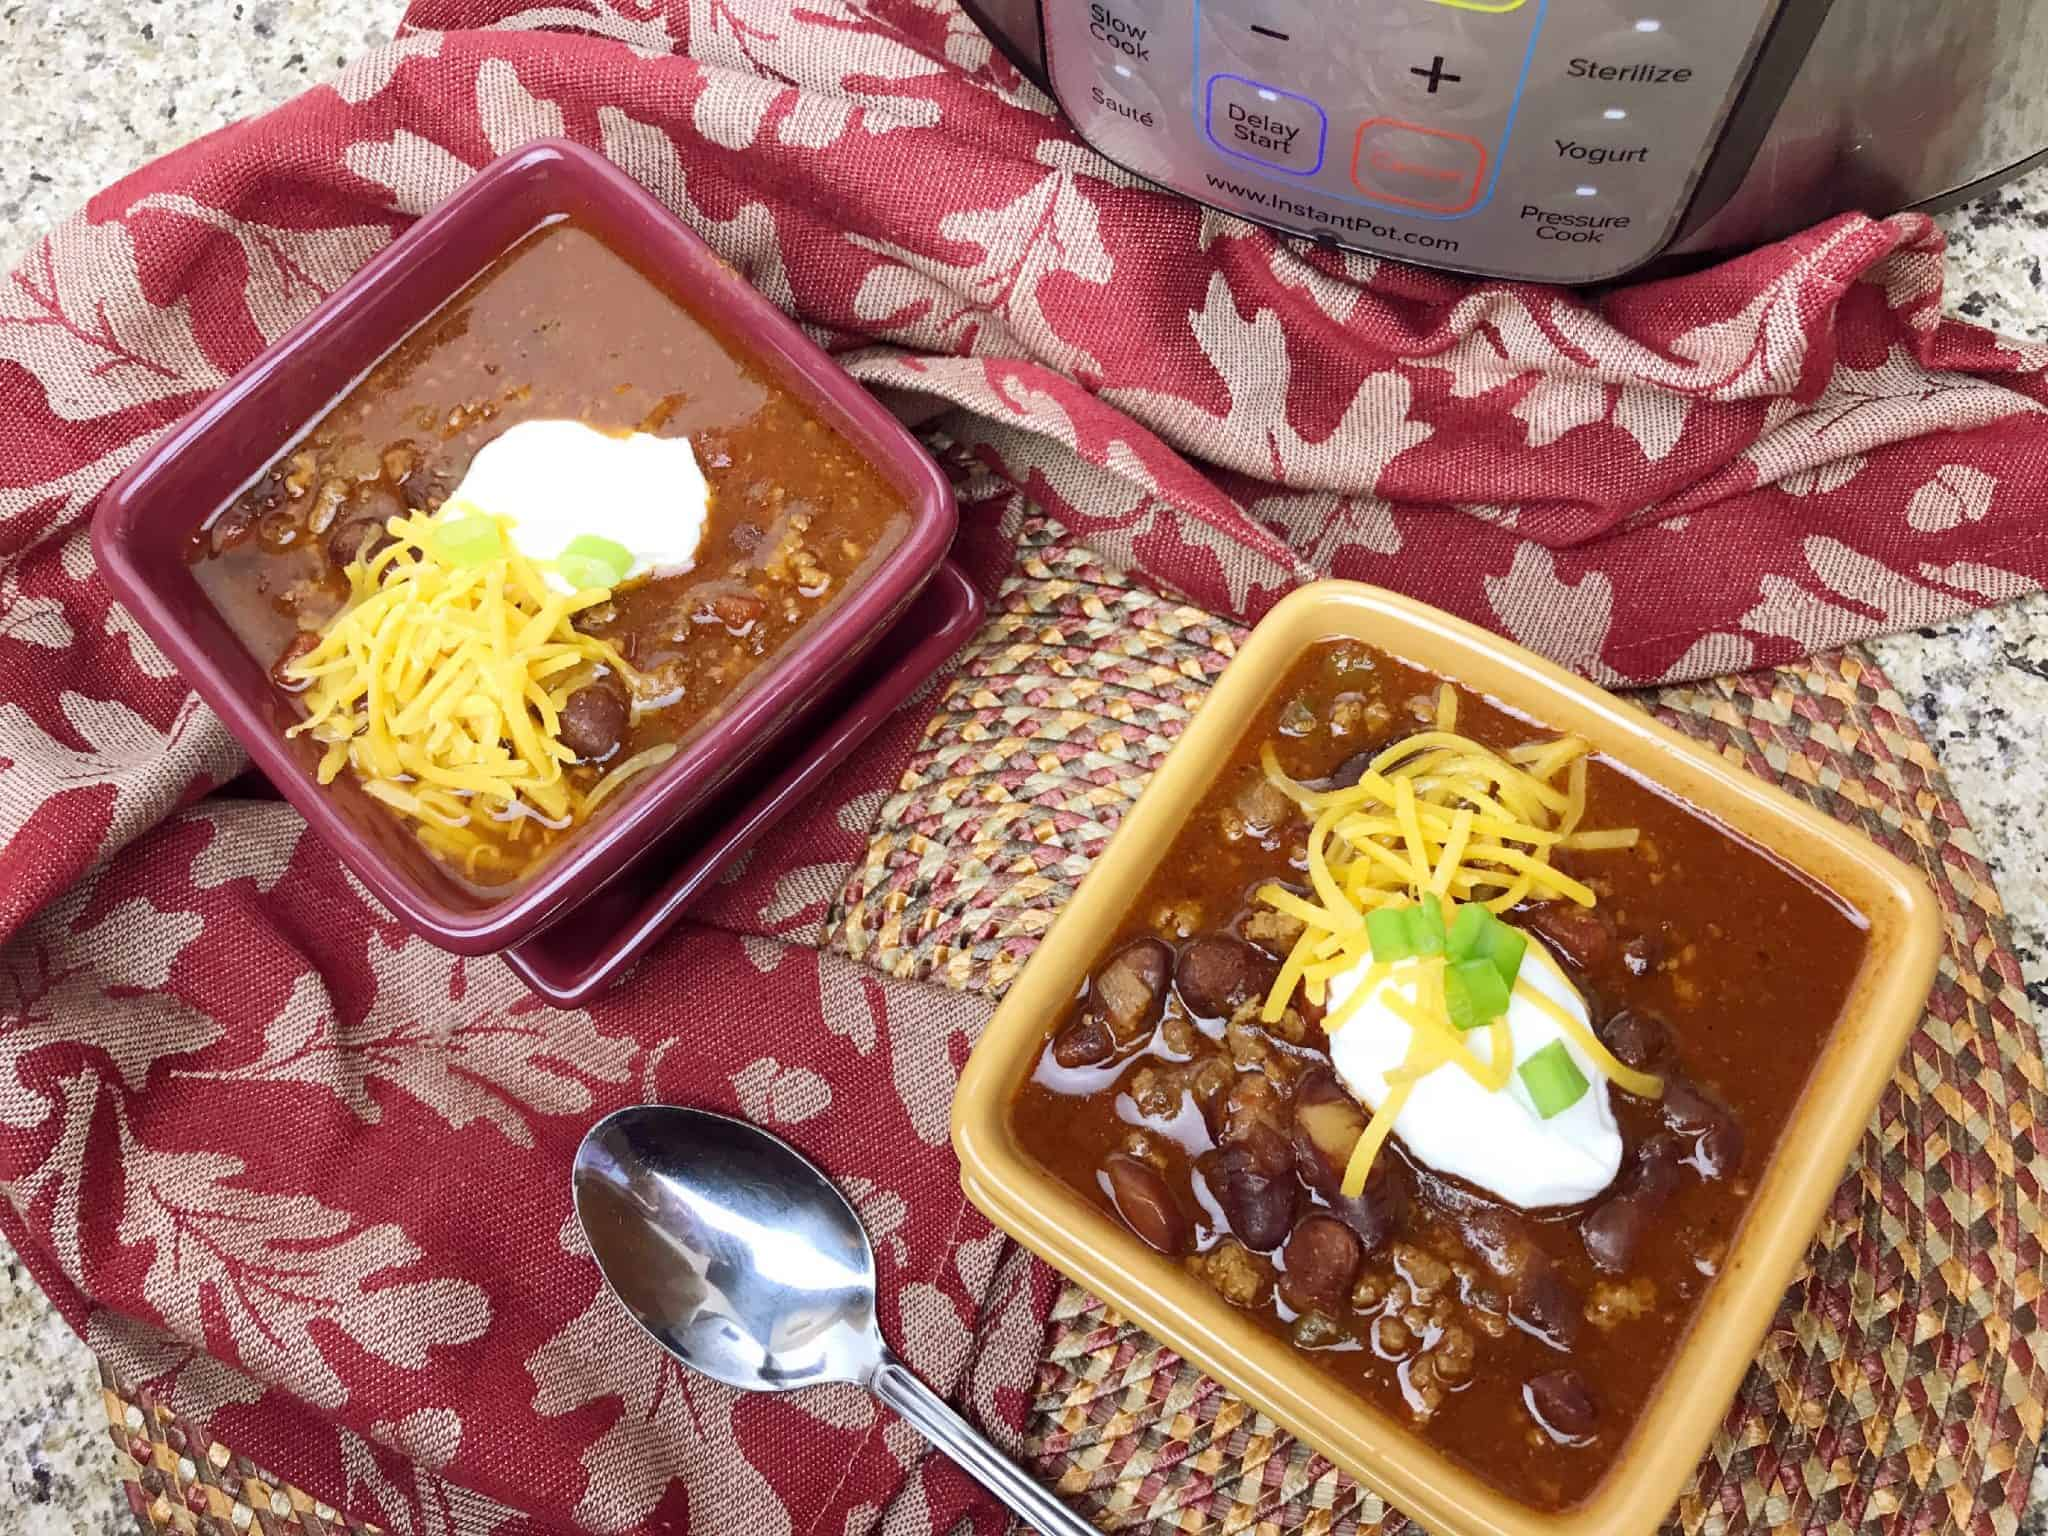 Try my mouth watering and healthy Instant Pot Chili recipe!